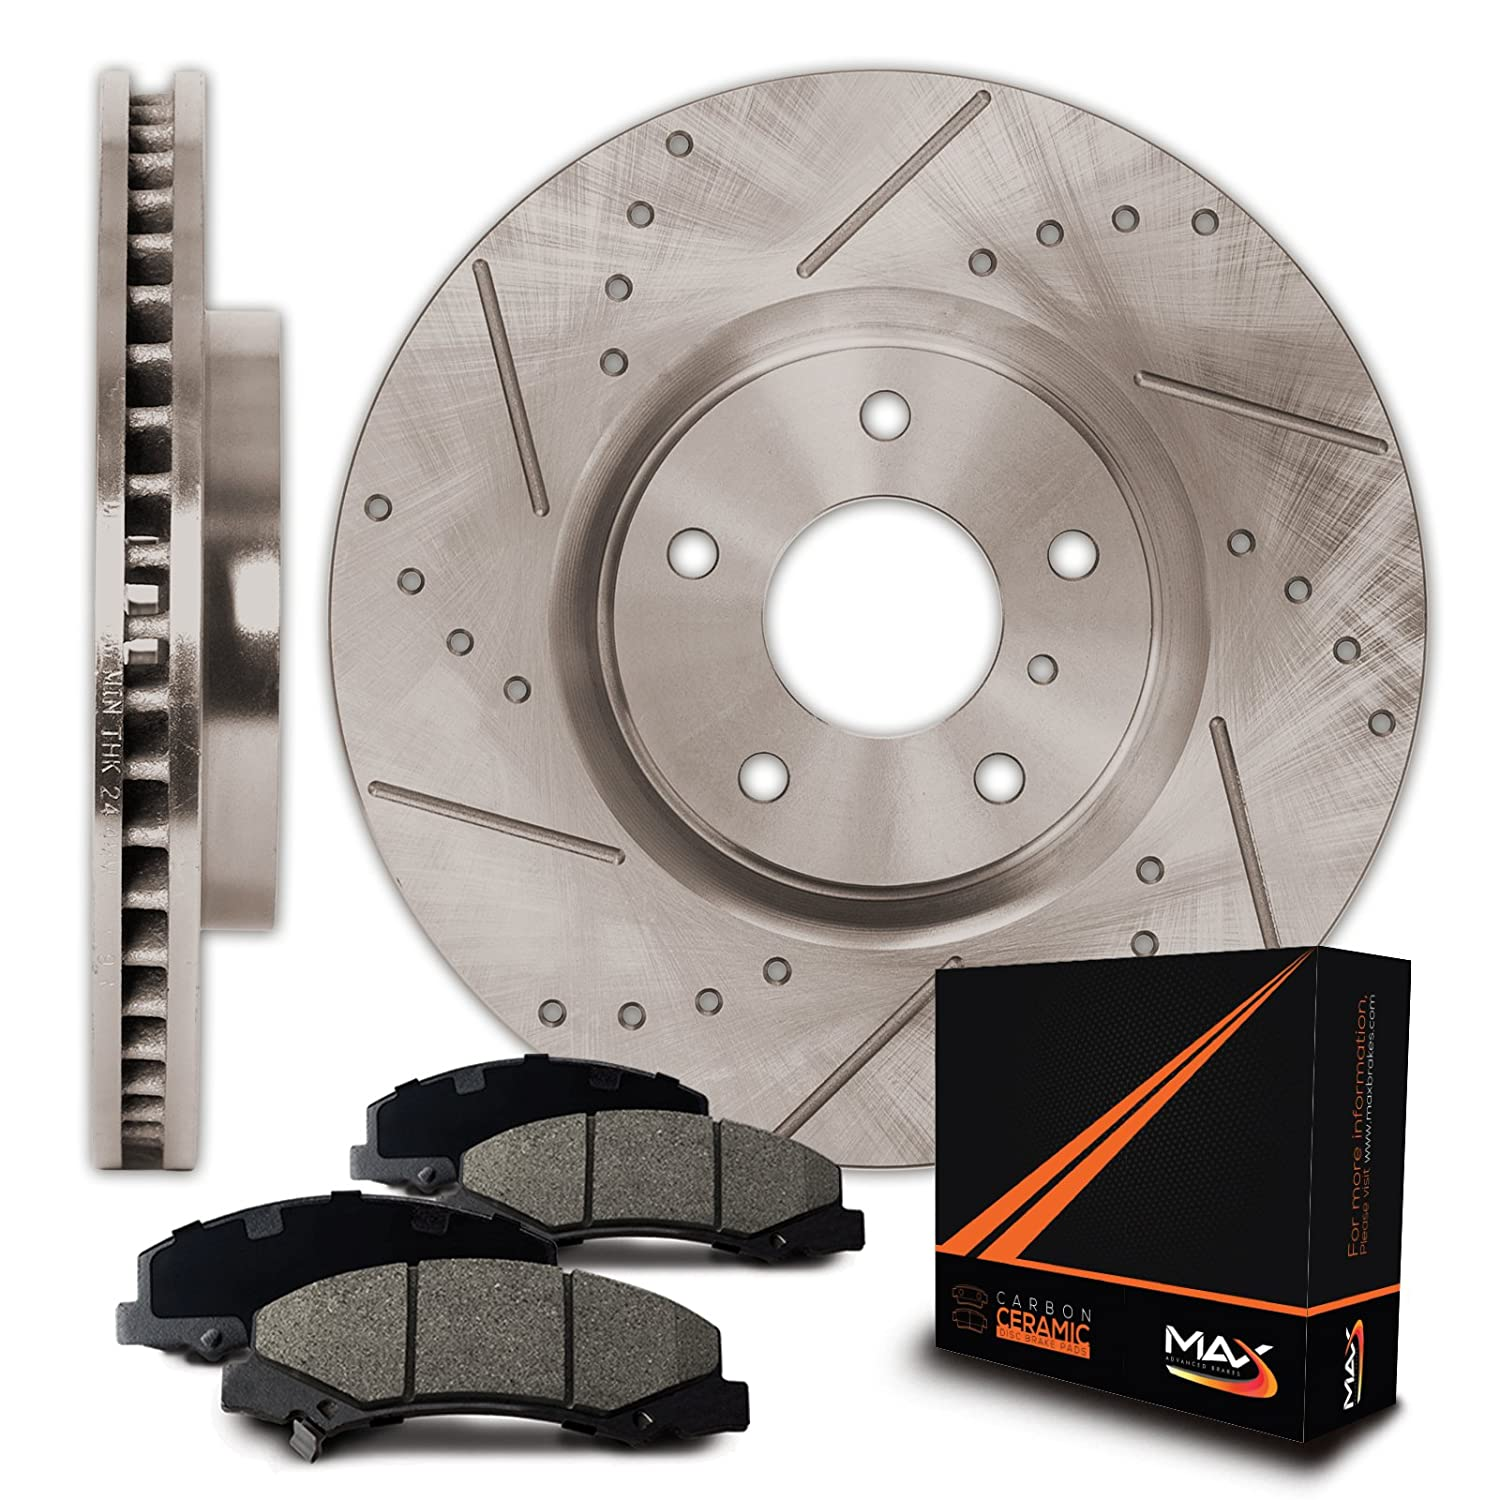 Max Brakes Premium Slotted|Drilled Rotors w/Ceramic Brake Pads Front Performance Brake Kit KT058331 [Fits:2002-2005 Ford Thunderbird | 2000-2006 Lincoln LS | 2000-2002 Jaguar S Type] Max Advanced Brakes